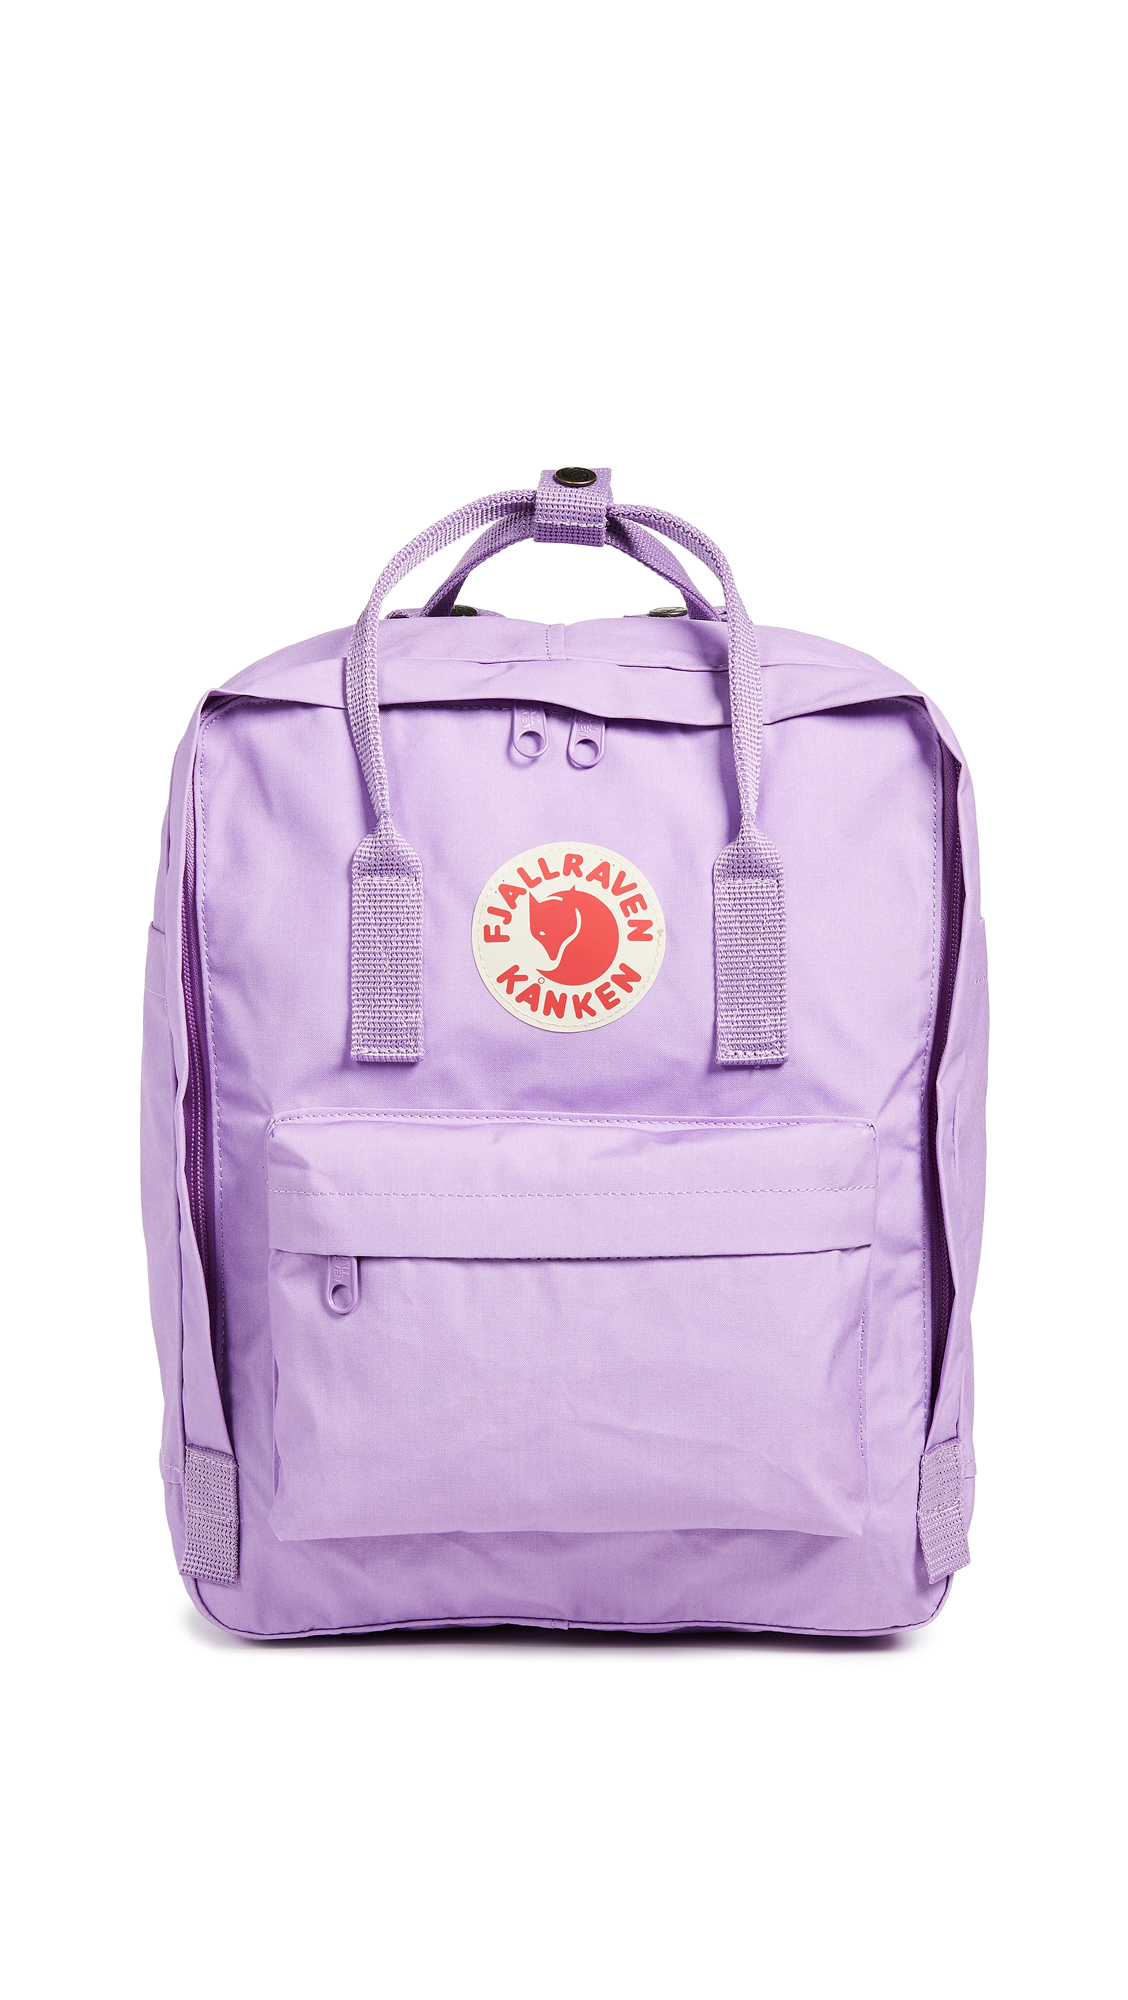 FJALL RAVEN Kanken Backpack in Orchid